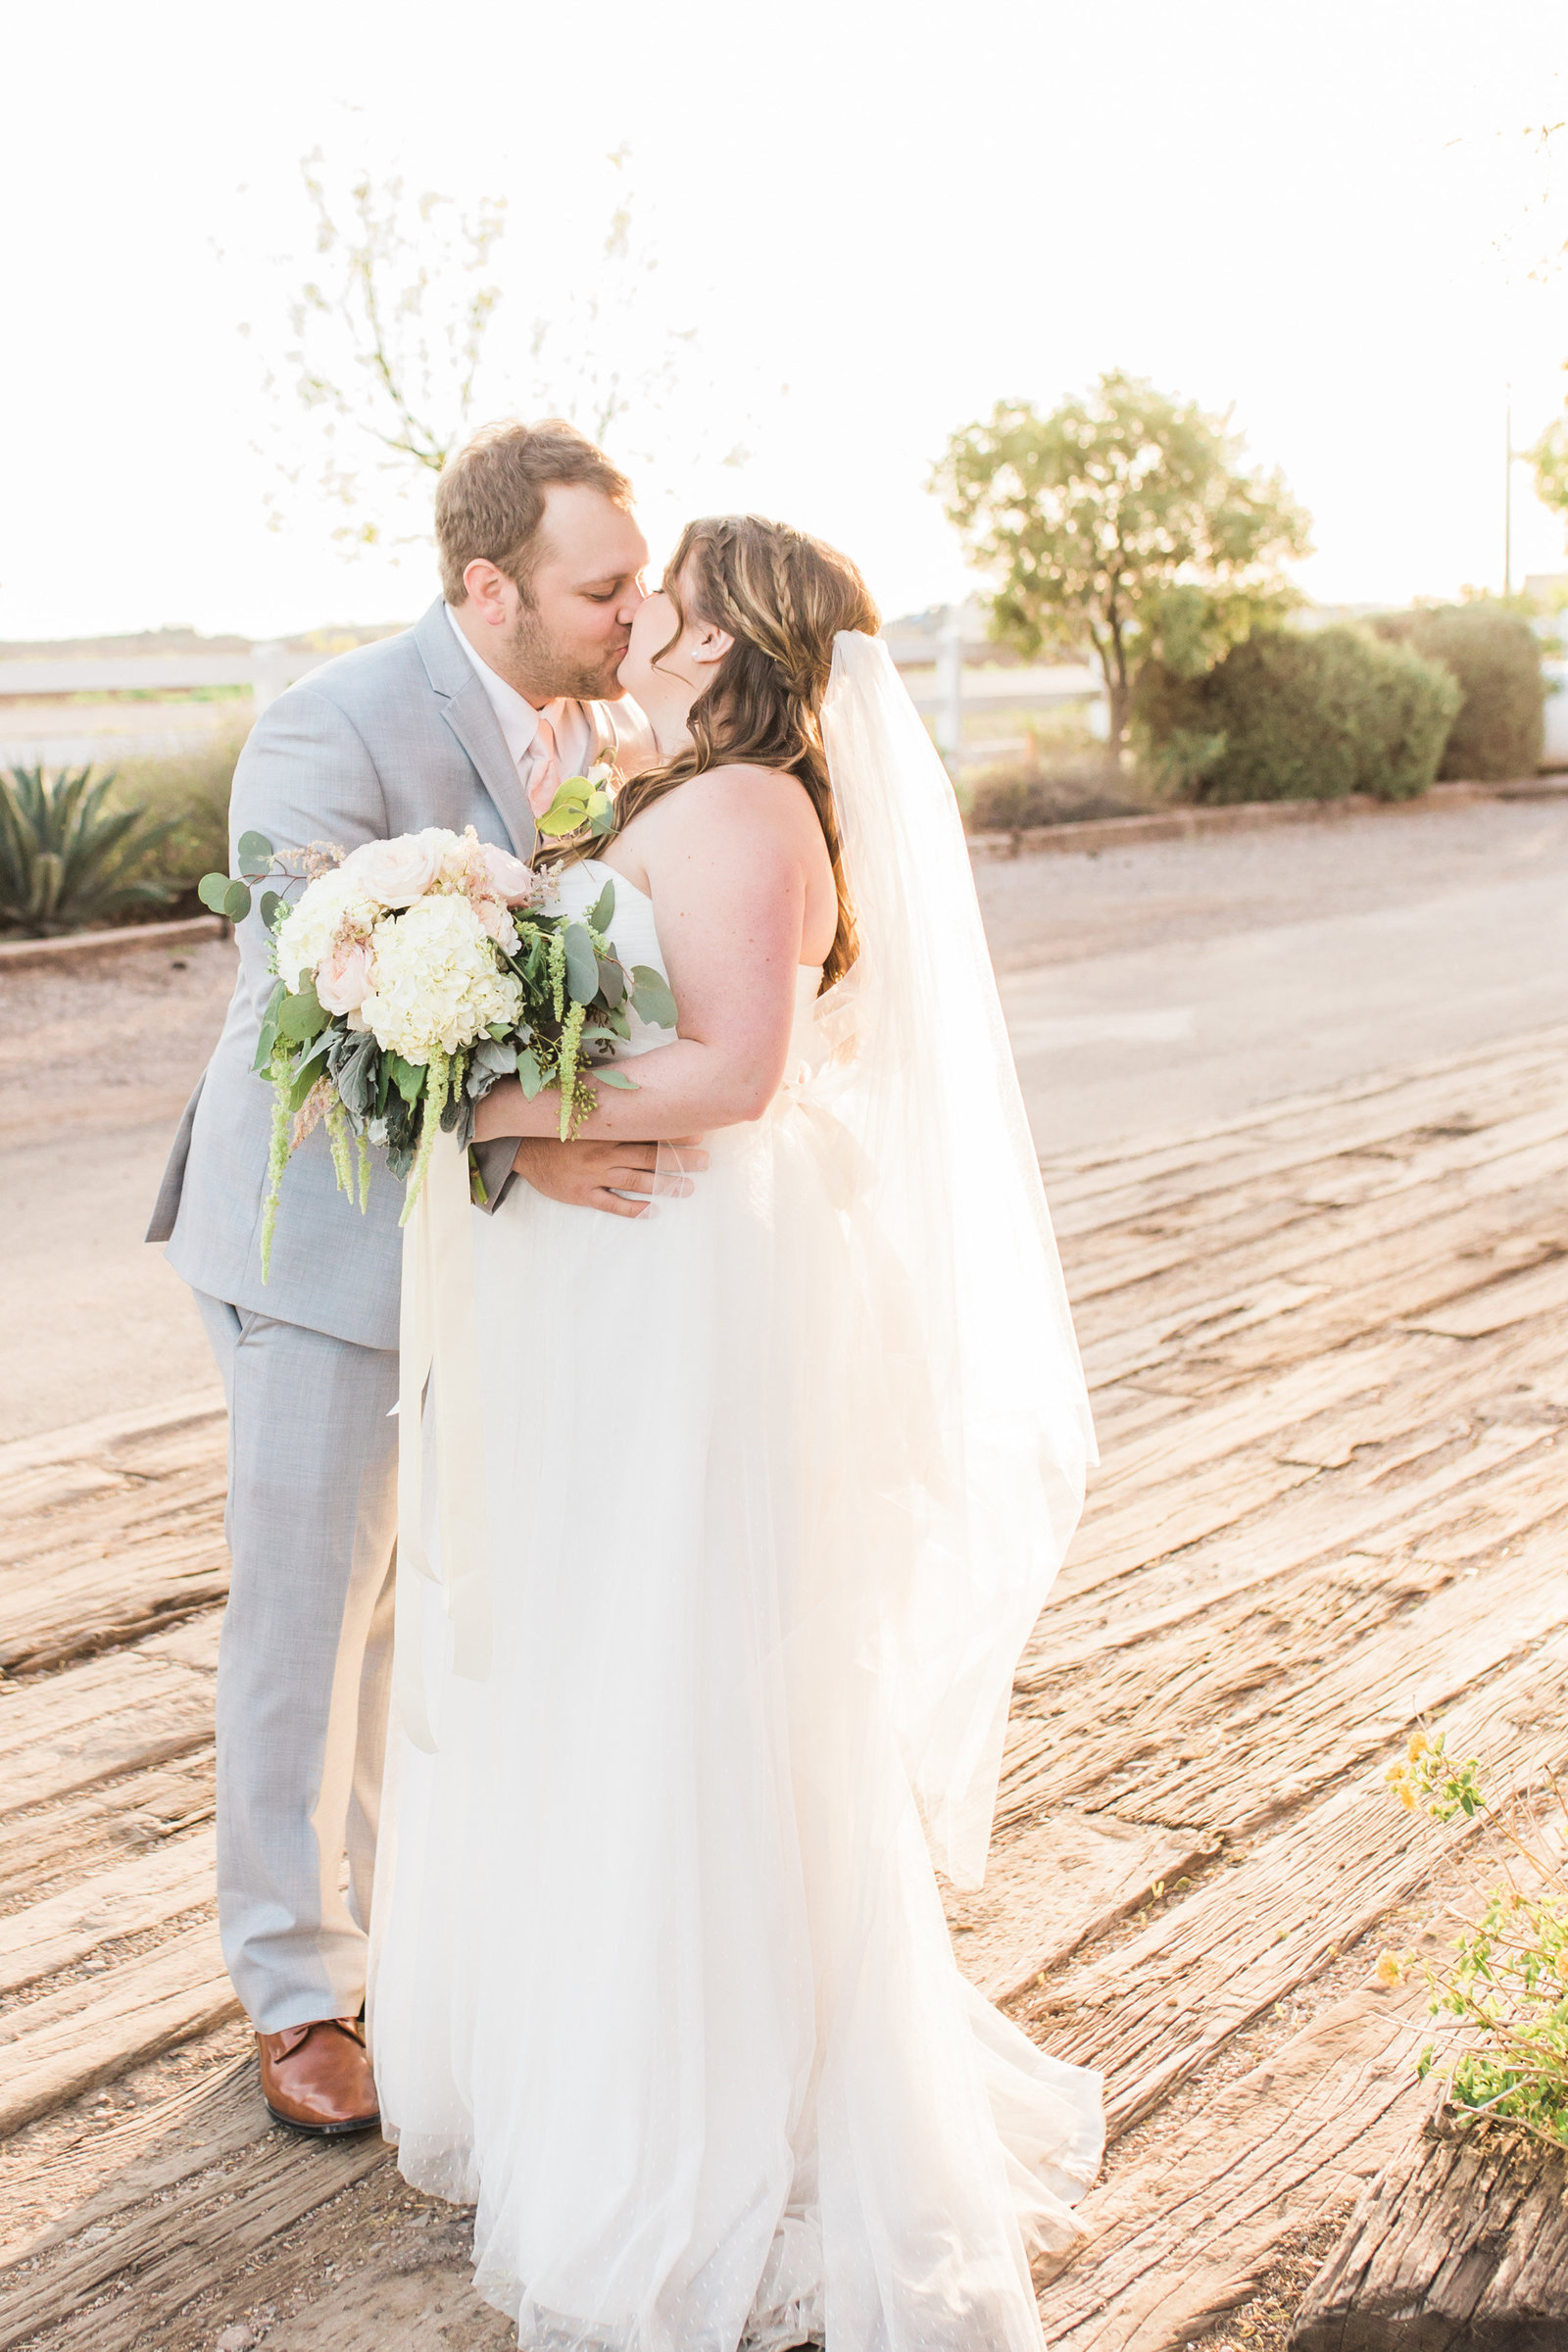 Florence Windmill Winery Rustic Elegant Wedding Photo with Bride and Groom Kissing | Tucson Wedding Photographer | West End Photography